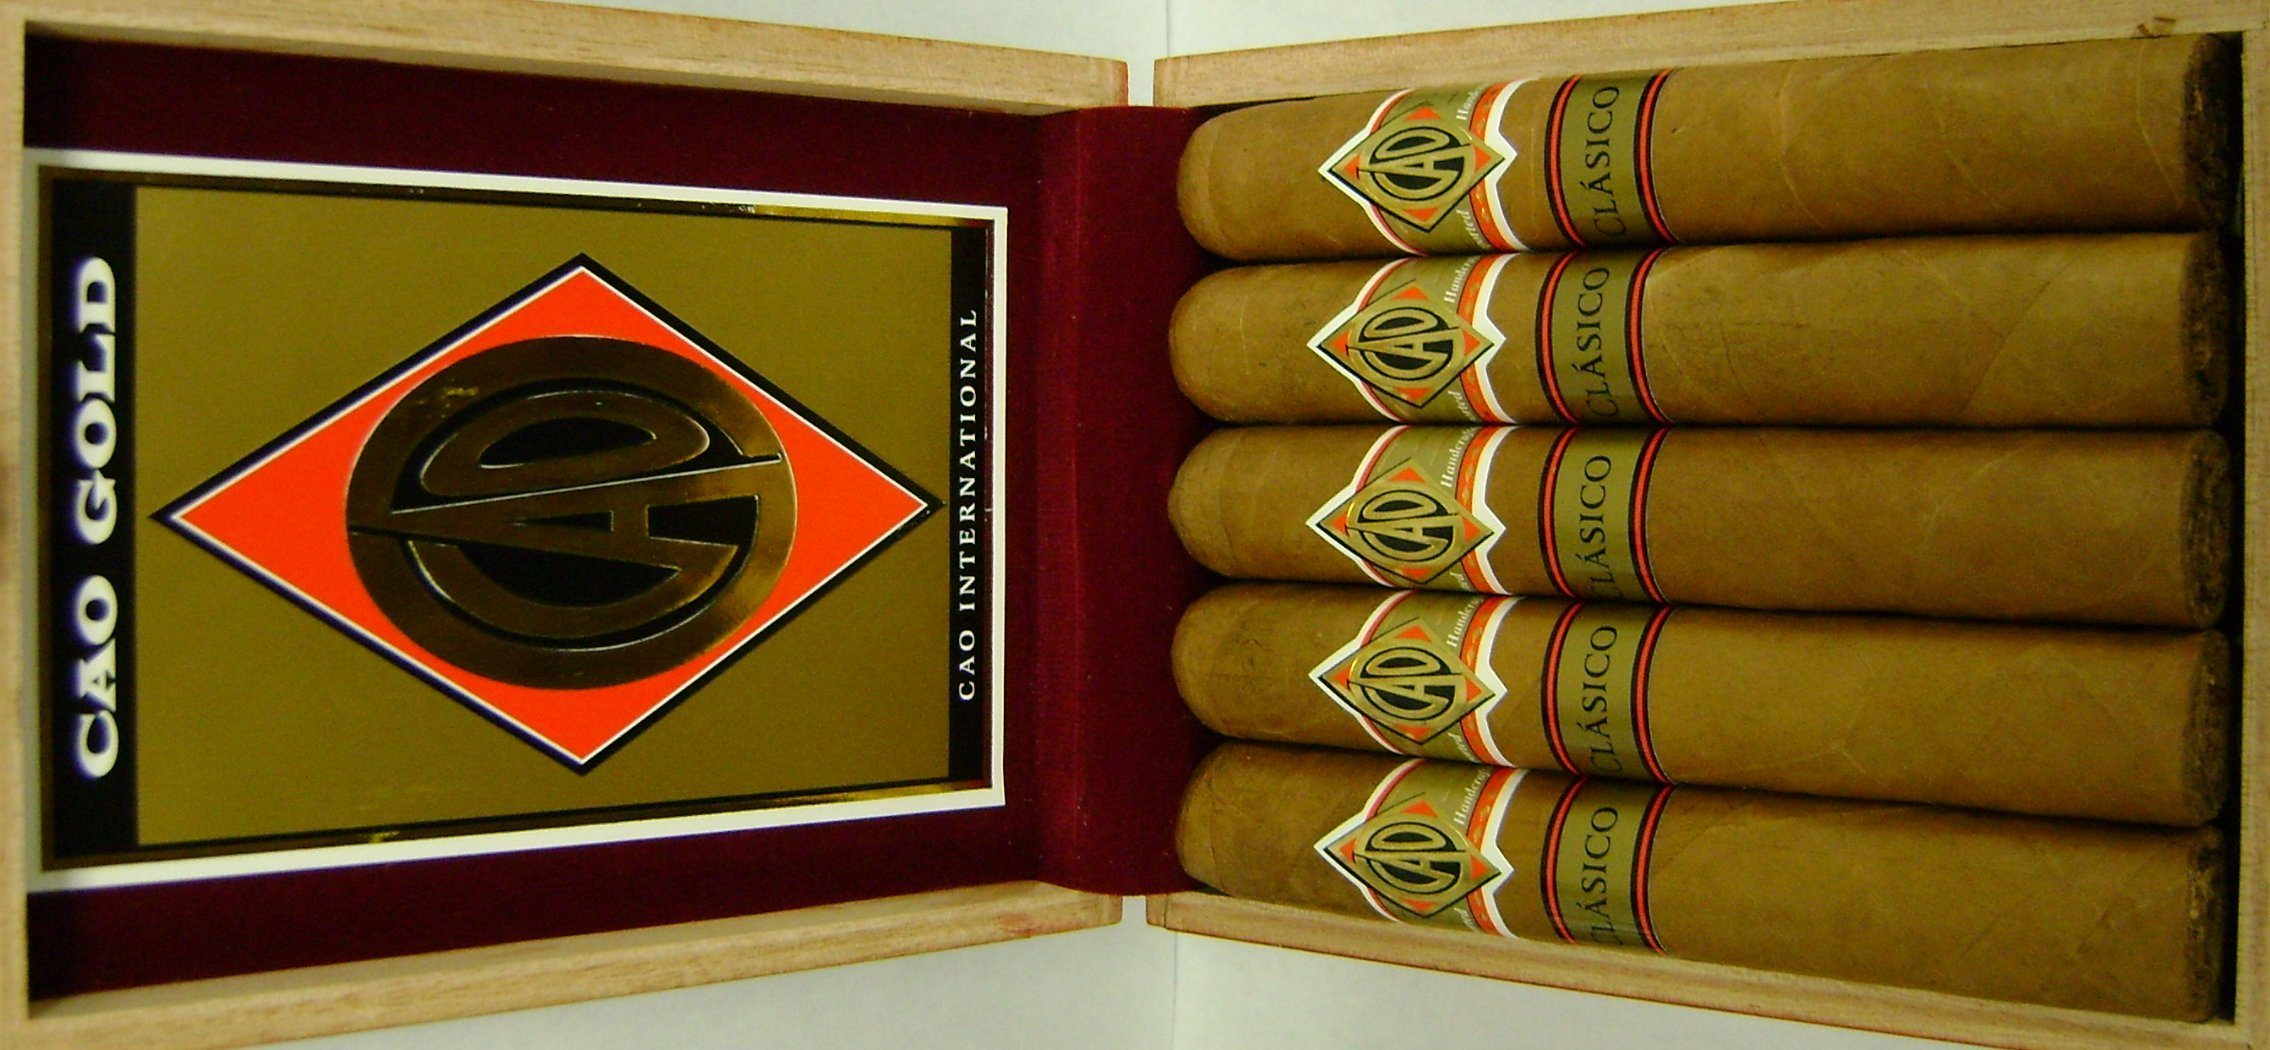 Cigar News: Arango Adds CAO Gold to Clasico Premium Cigar Series, Plus a New Macanudo and Punch Shape